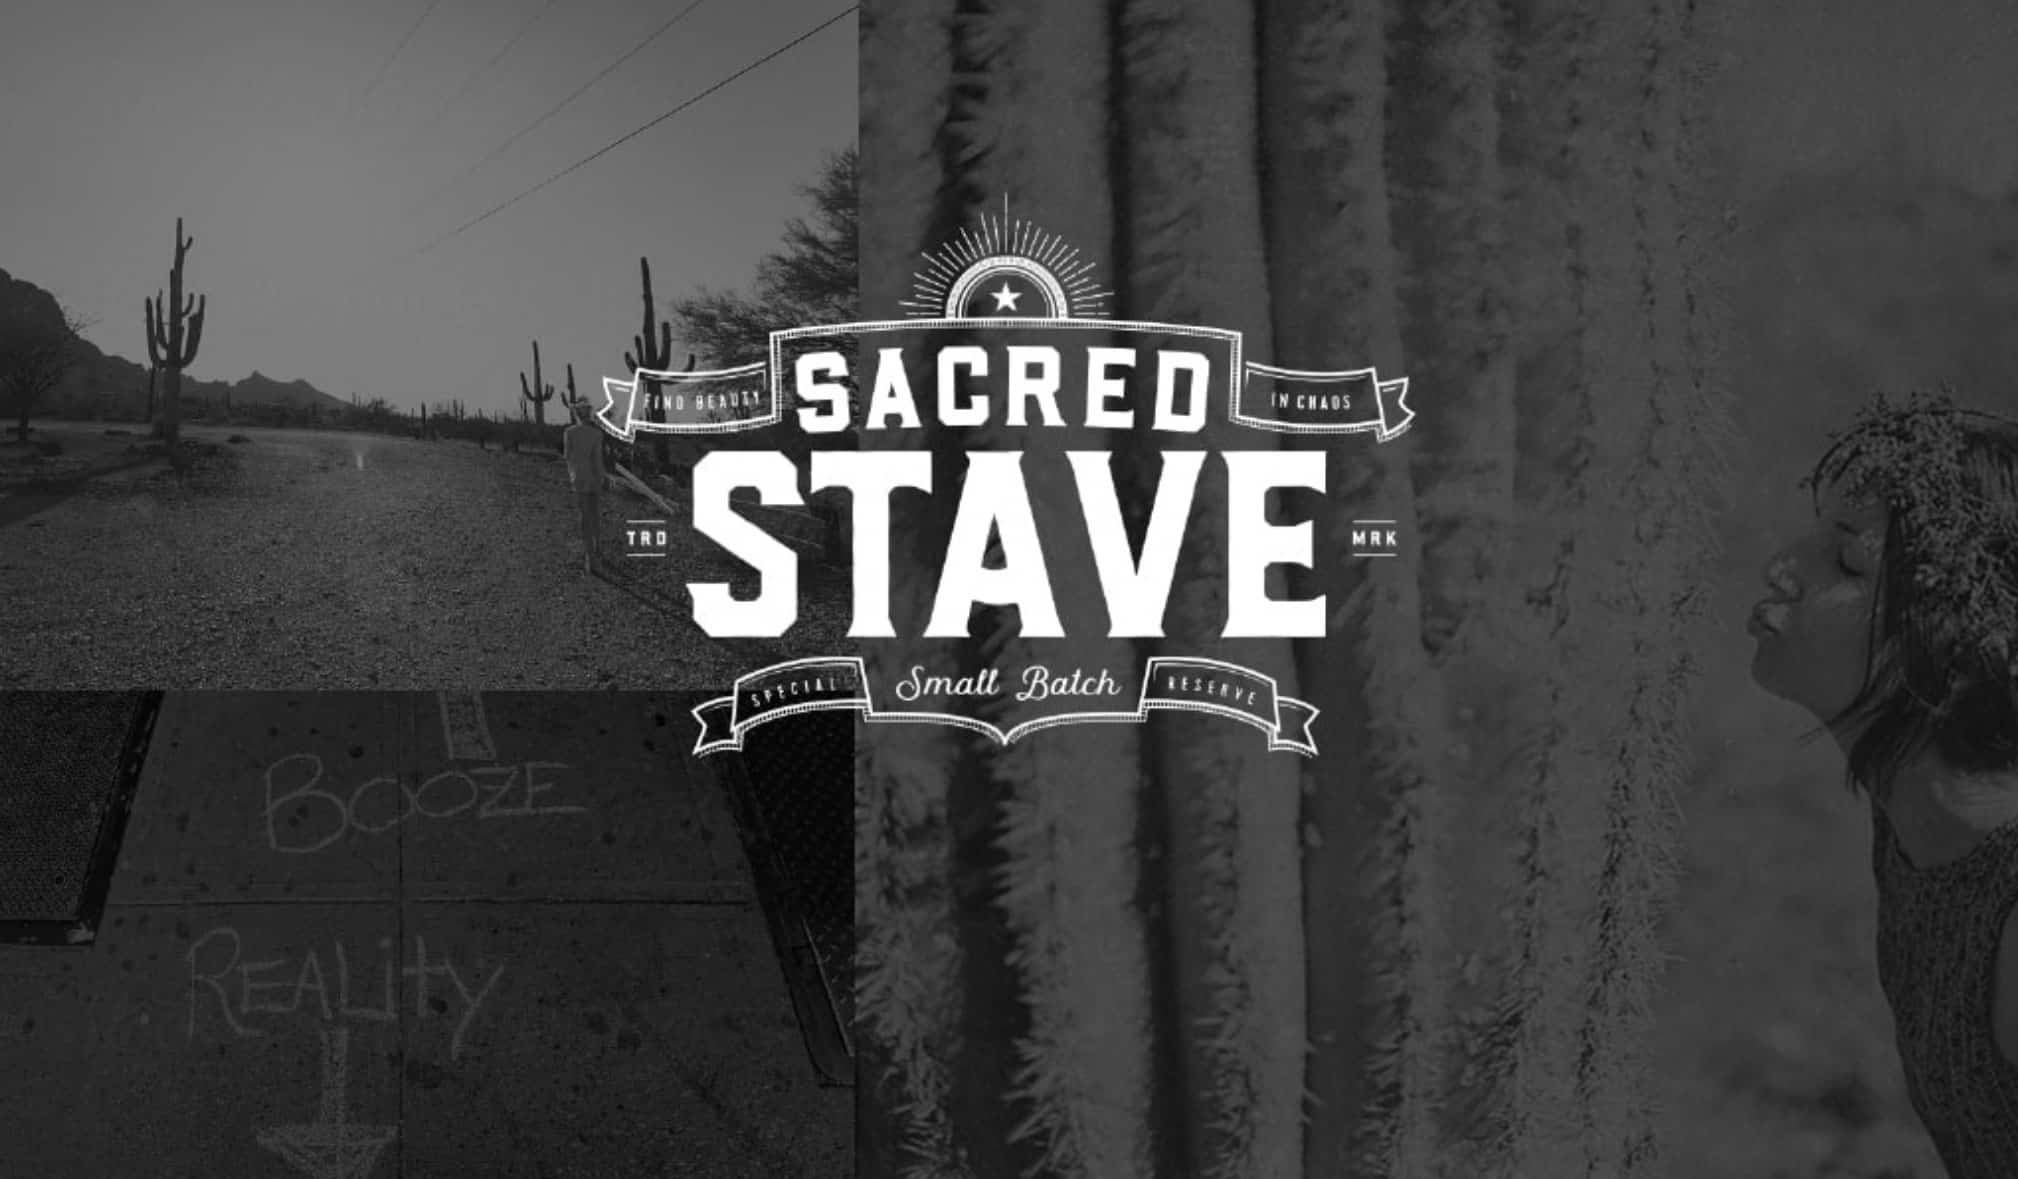 Sacred Stave by SanTan Brewing Company   Case Studies   Commit Agency